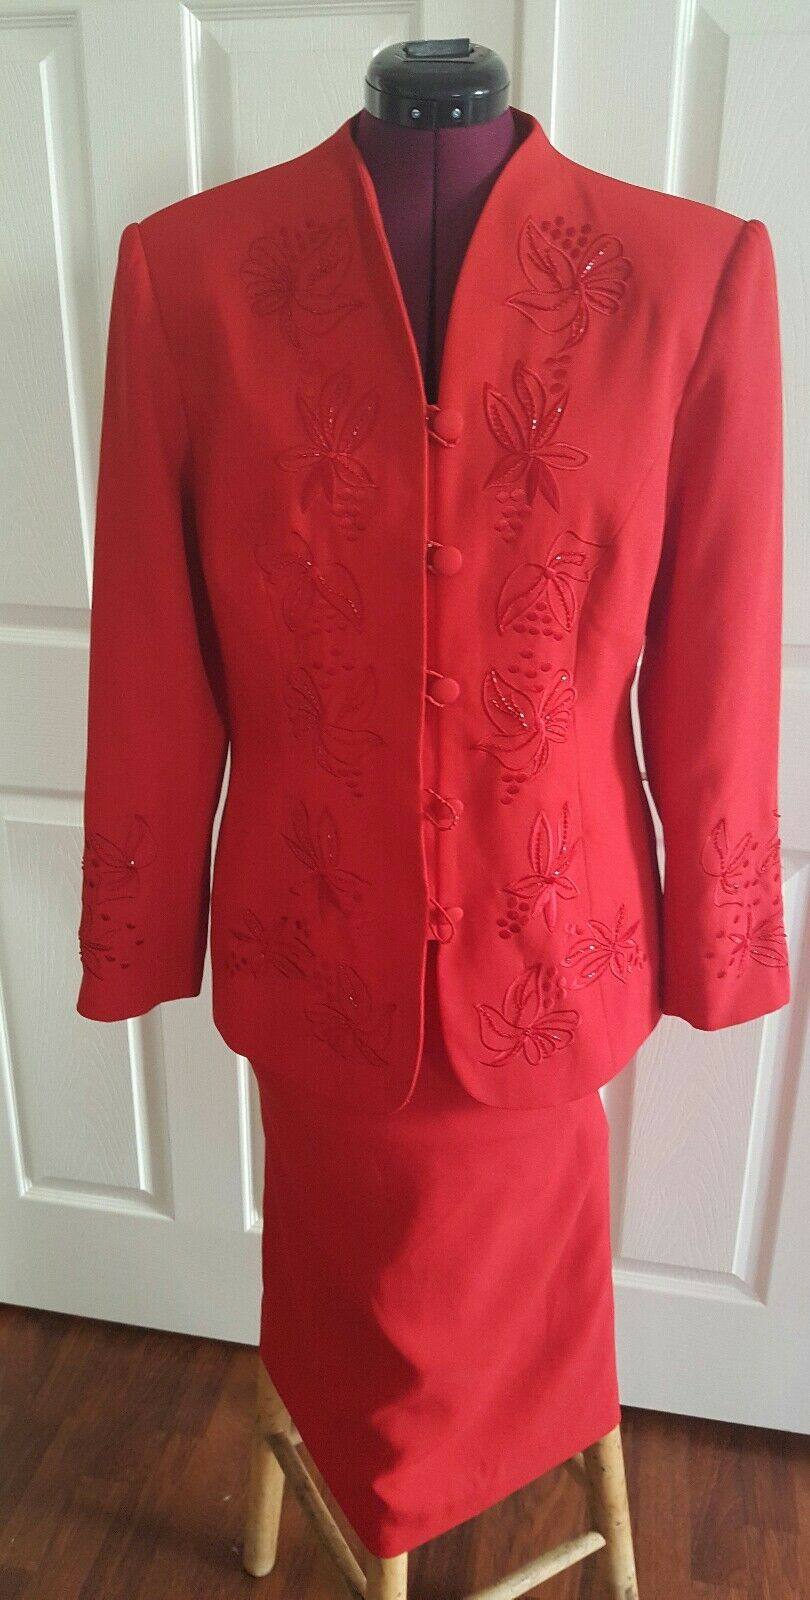 Sabatini women's skirt suit. Beautiful and classy red suit sz 10.